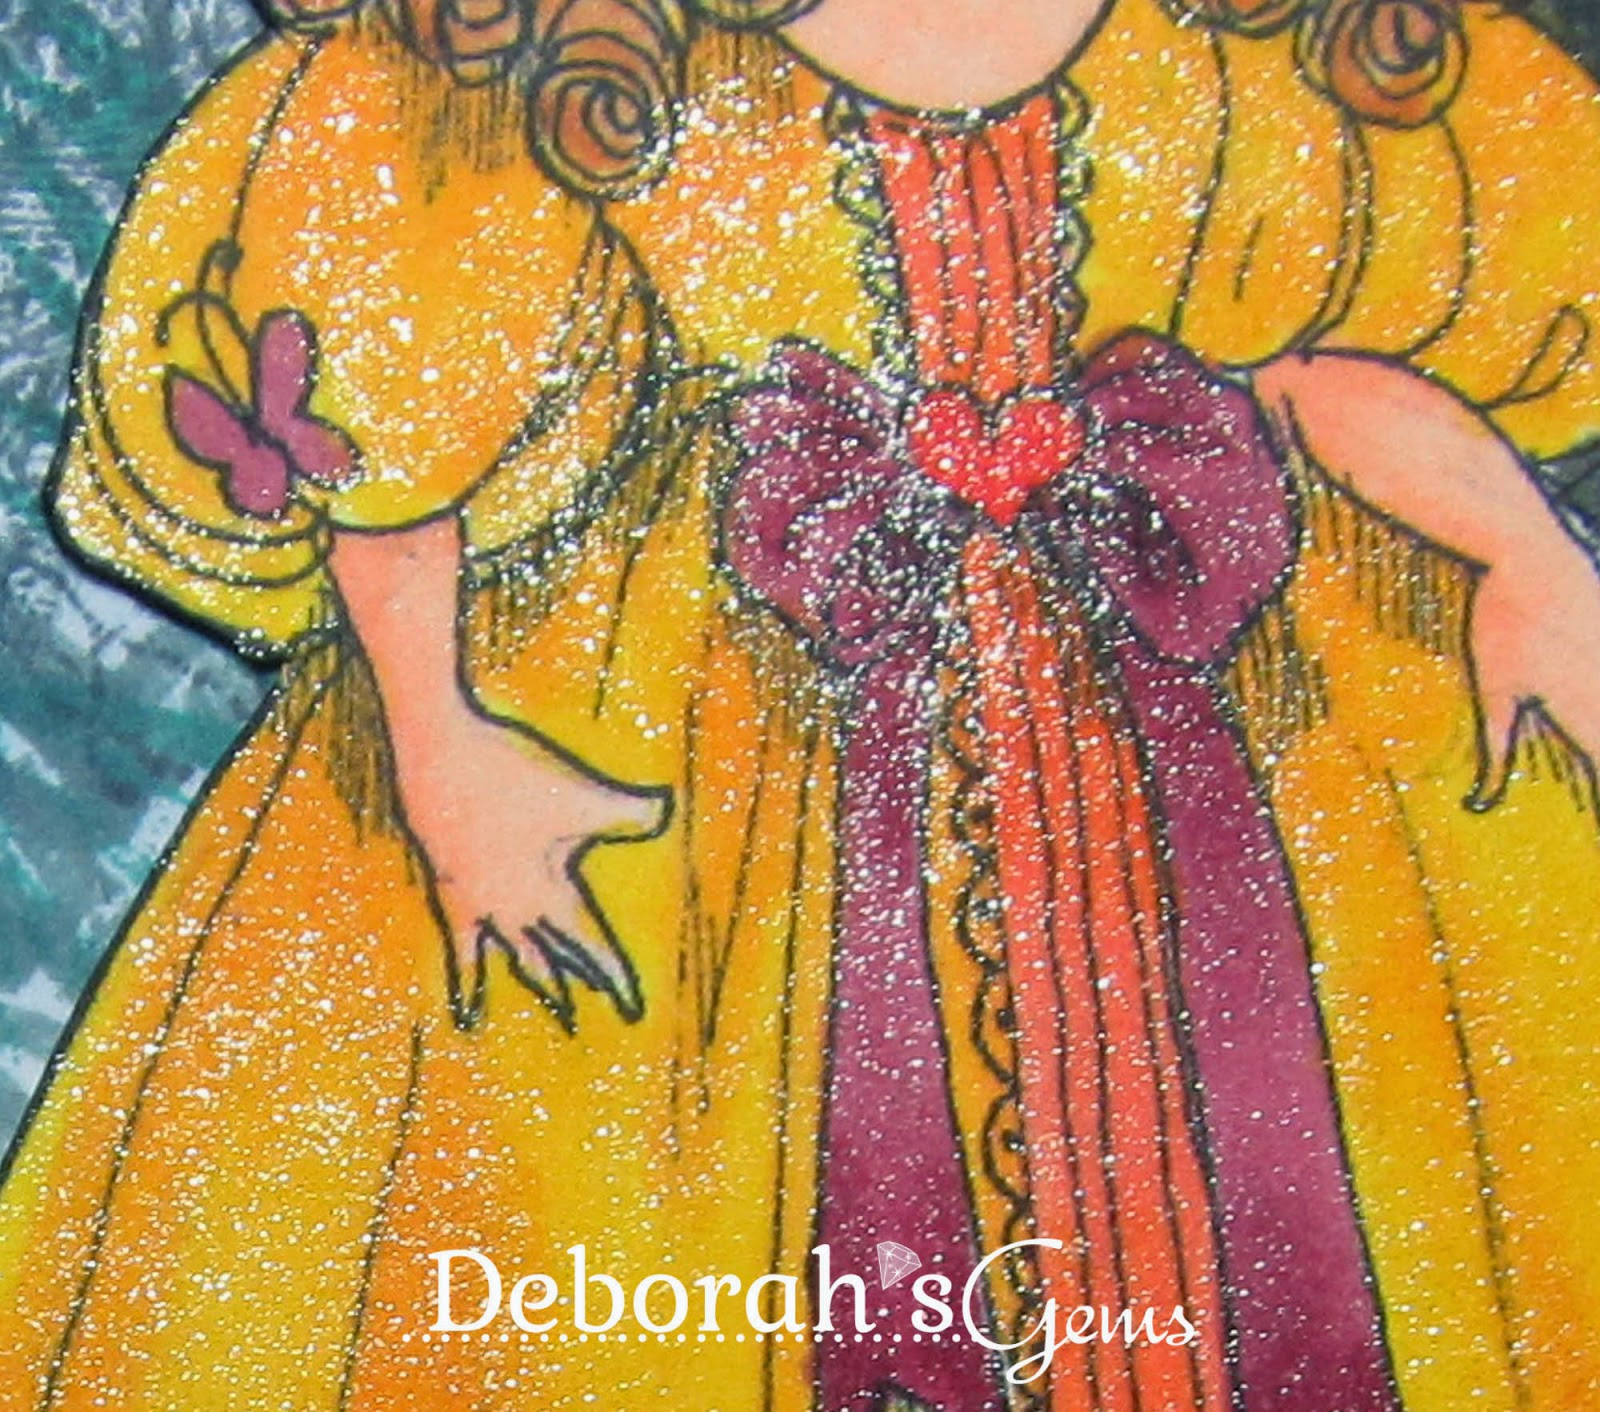 Beauty & The Beast detail - photo by Deborah Frings - Deborah's Gems